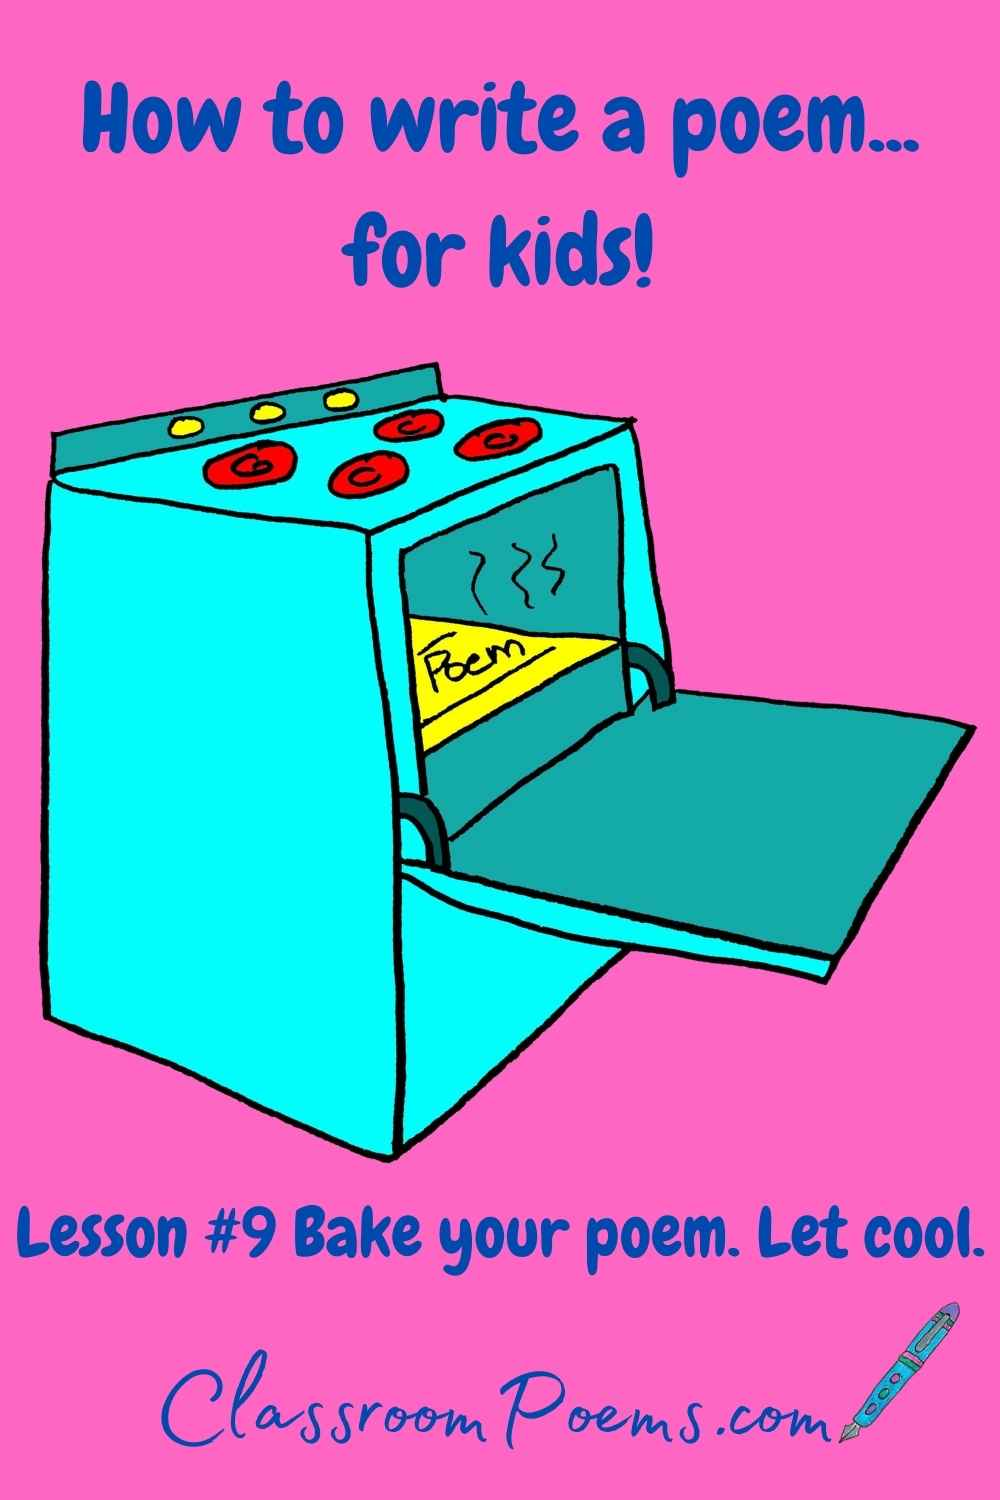 How to teach poetry to kids. Bake your poem and let it cool.